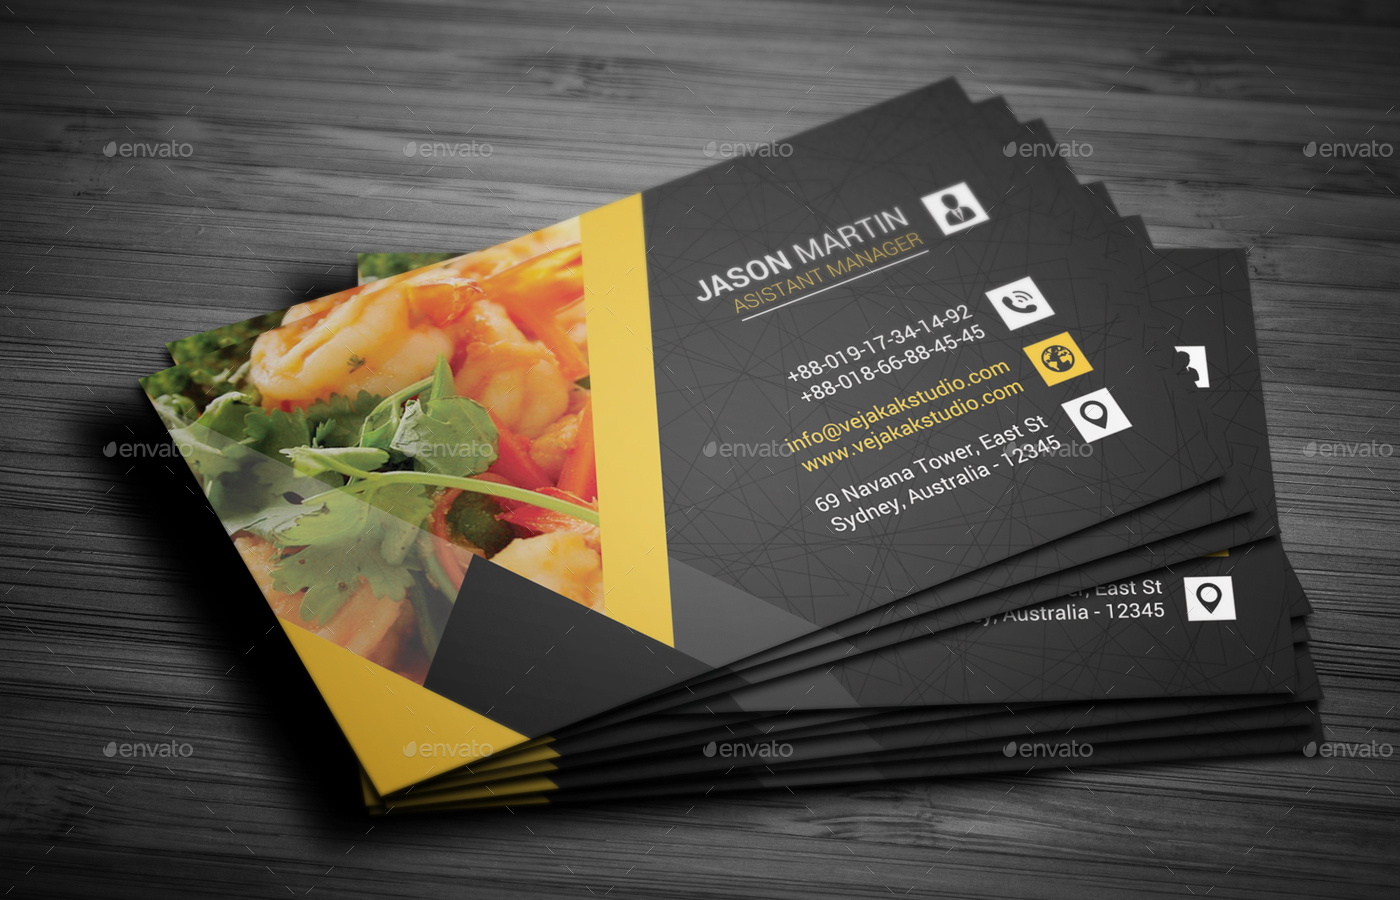 Restaurant business card by vejakakstudio graphicriver preview01g reheart